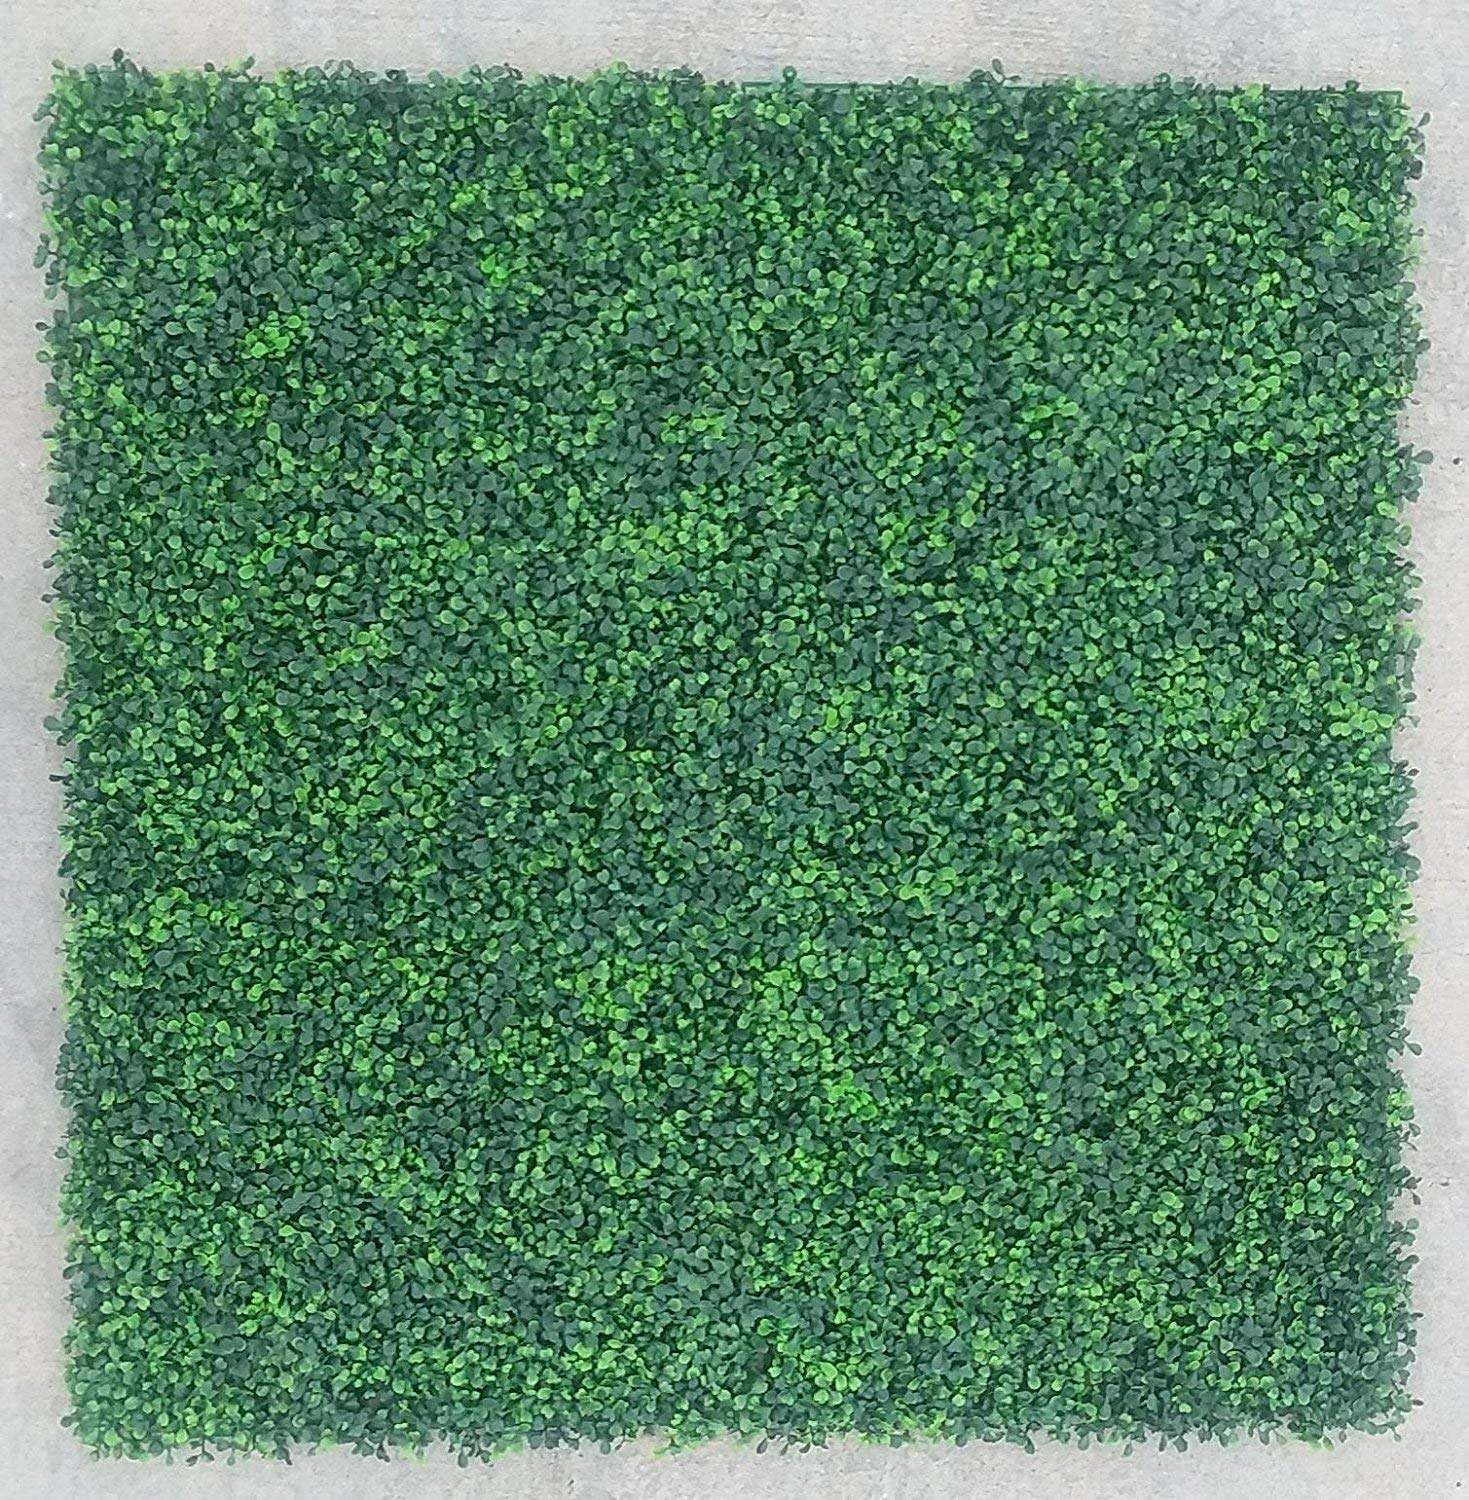 Merveilleux Smart Panel Artificial Milan Leaf Hedge Panel Wall Green Faux Fence Mat  Fake Privacy Screens Outdoor